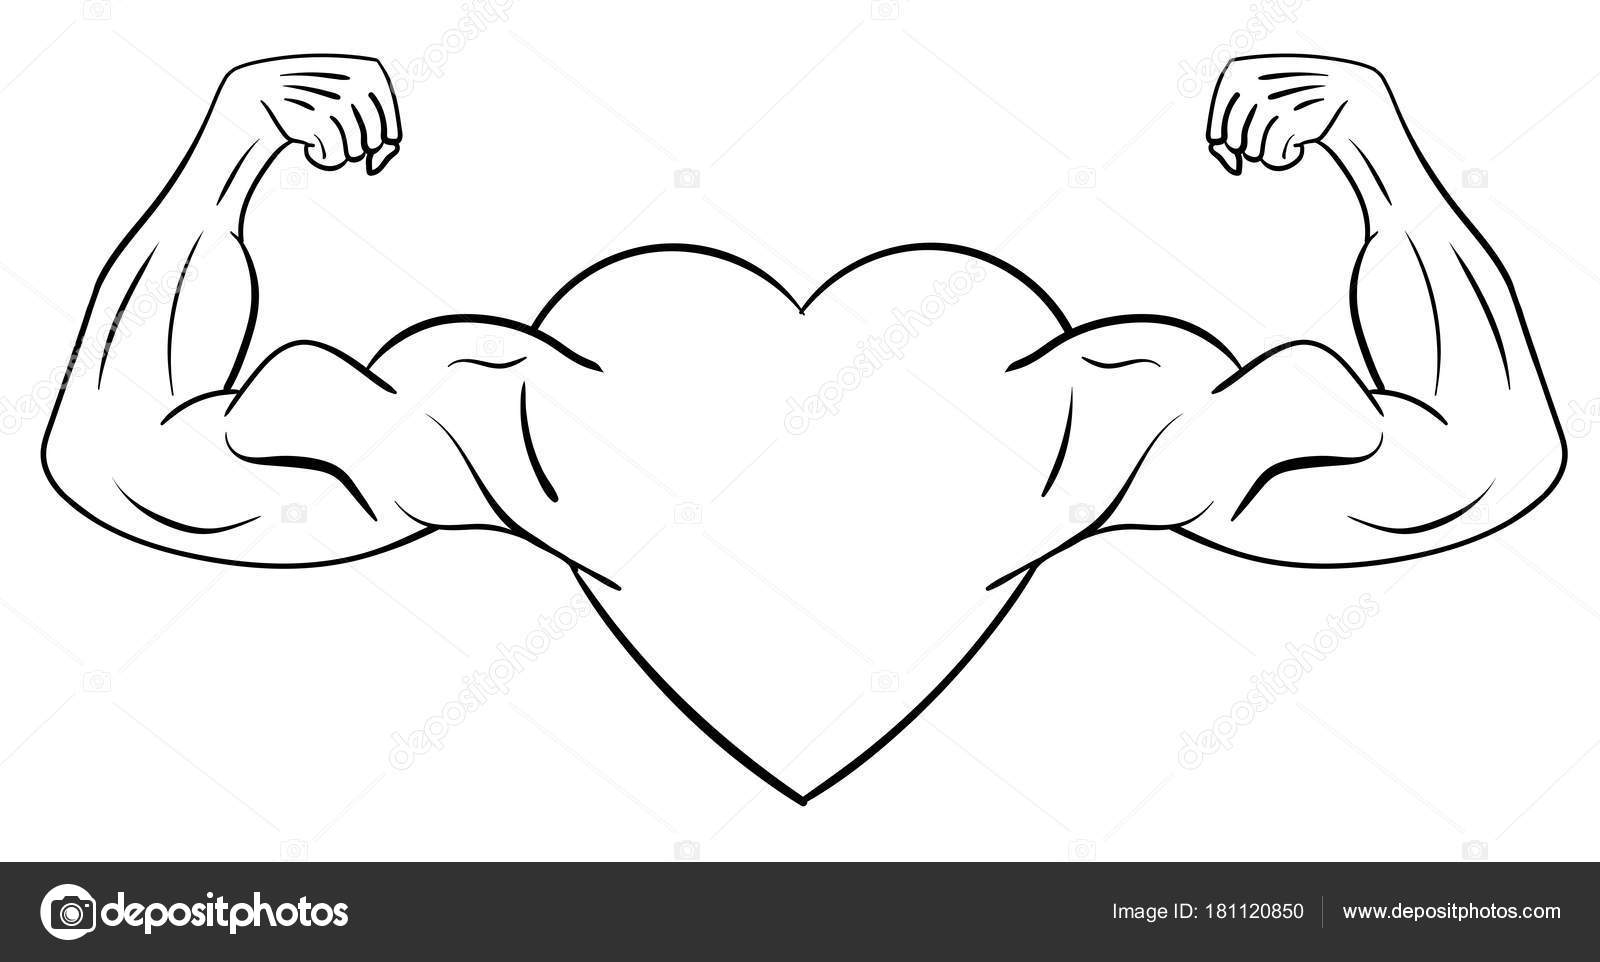 Heart With Muscular Arms Stock Vector Laures 181120850